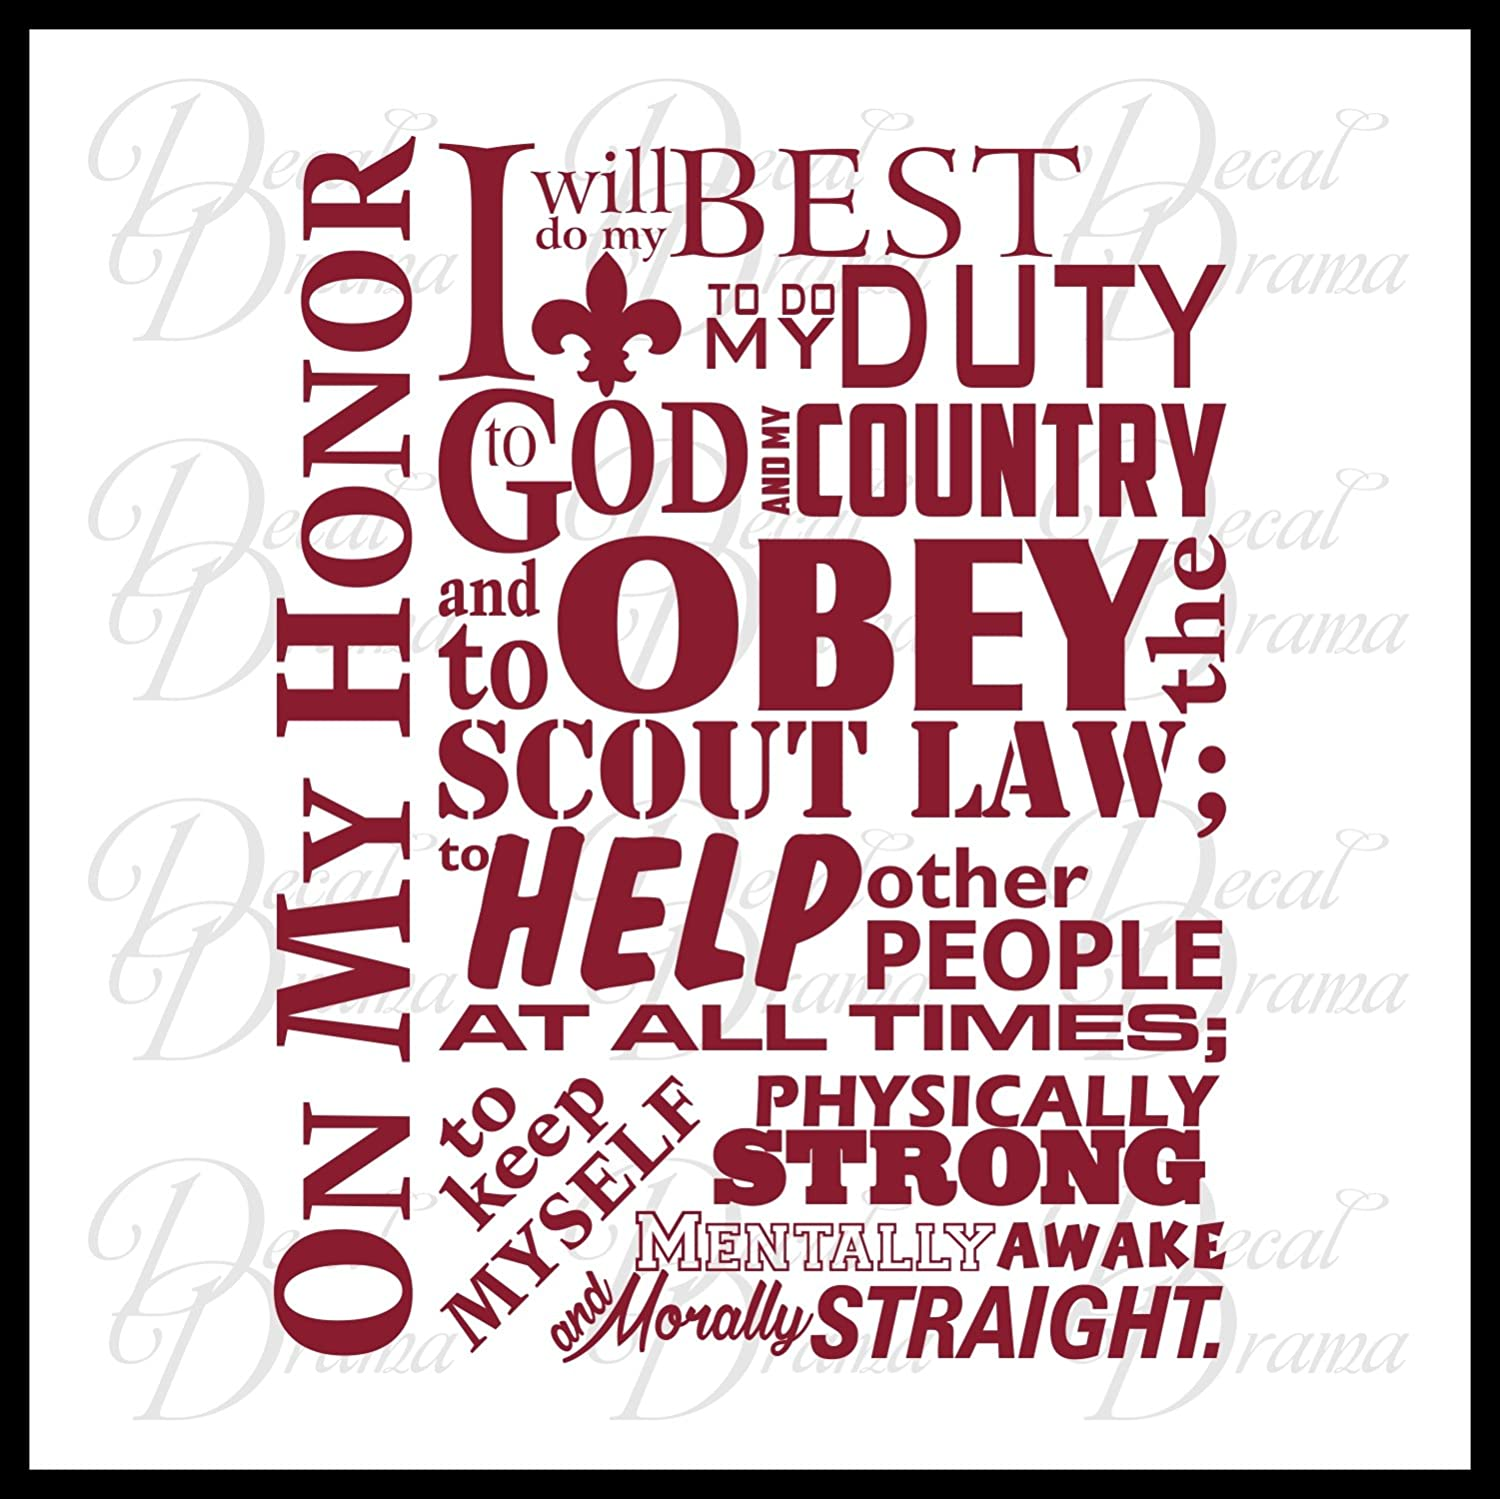 image relating to Cub Scout Oath and Law Printable titled : Boy Scout Oath Upon My Honor I will Do My Most straightforward Toward